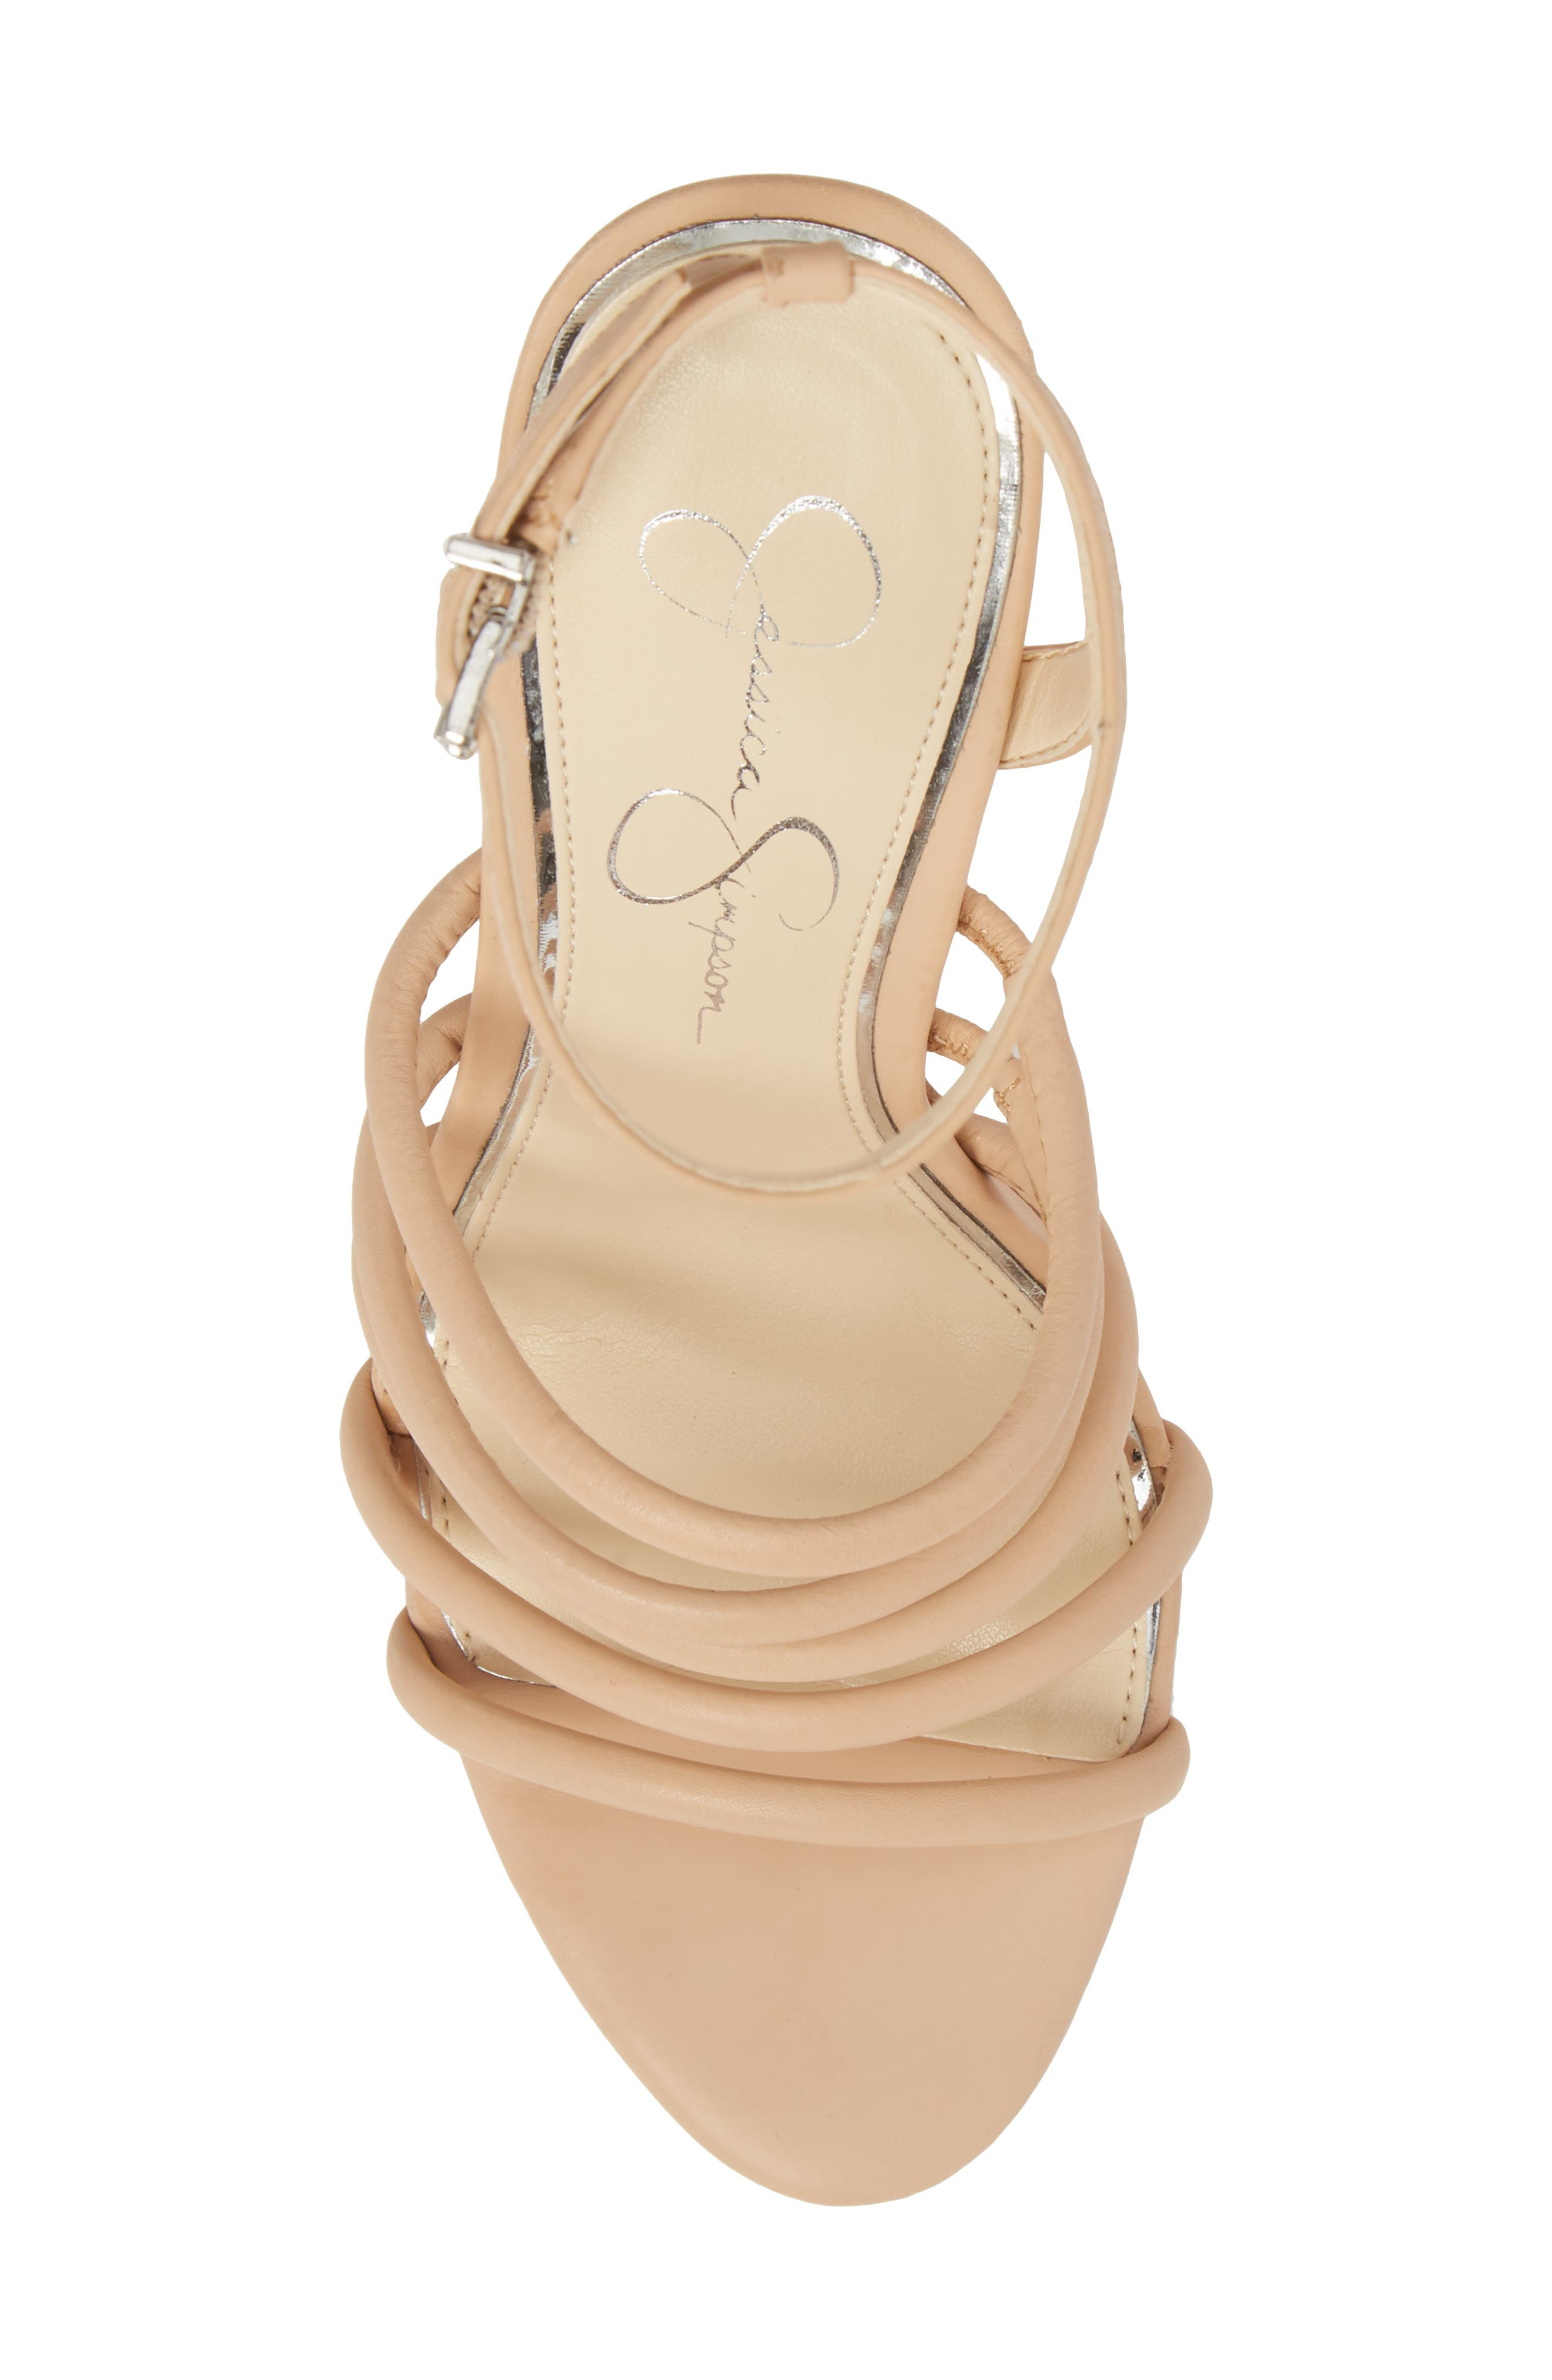 Joselle Strappy Sandal,                             Alternate thumbnail 15, color,